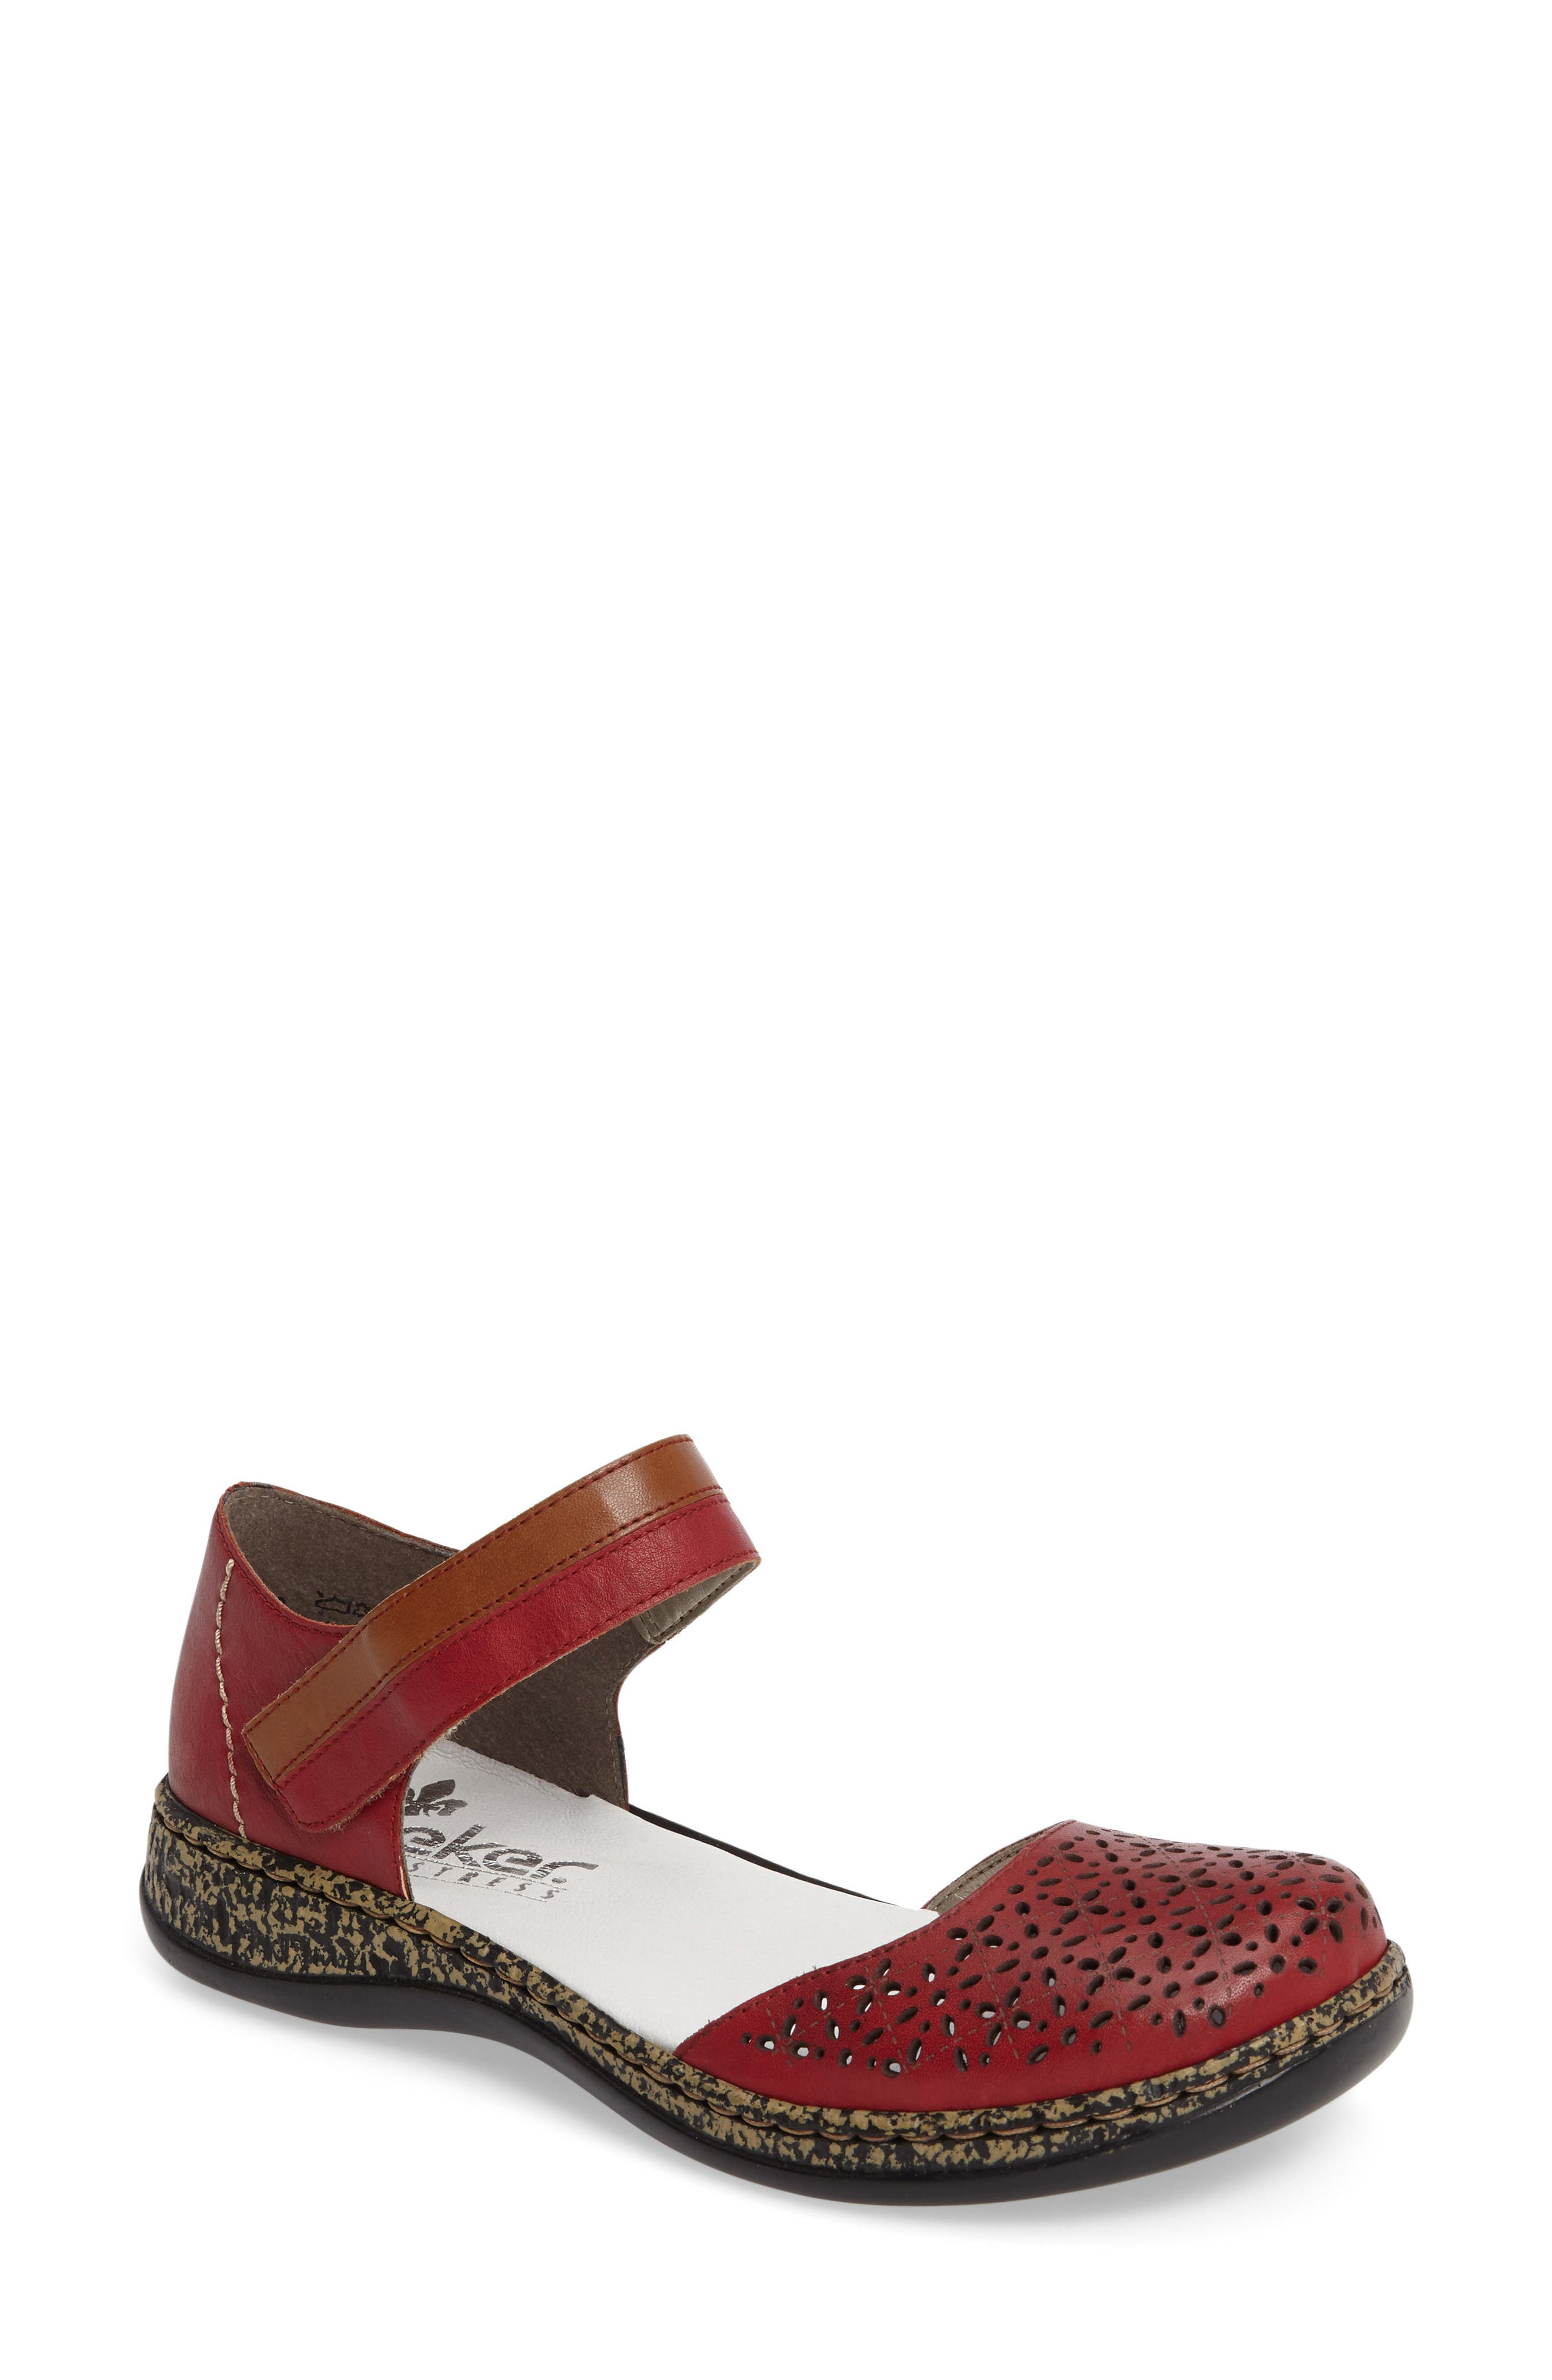 Daisy 10 Mary Jane Flat,                             Main thumbnail 1, color,                             ROSSO LEATHER